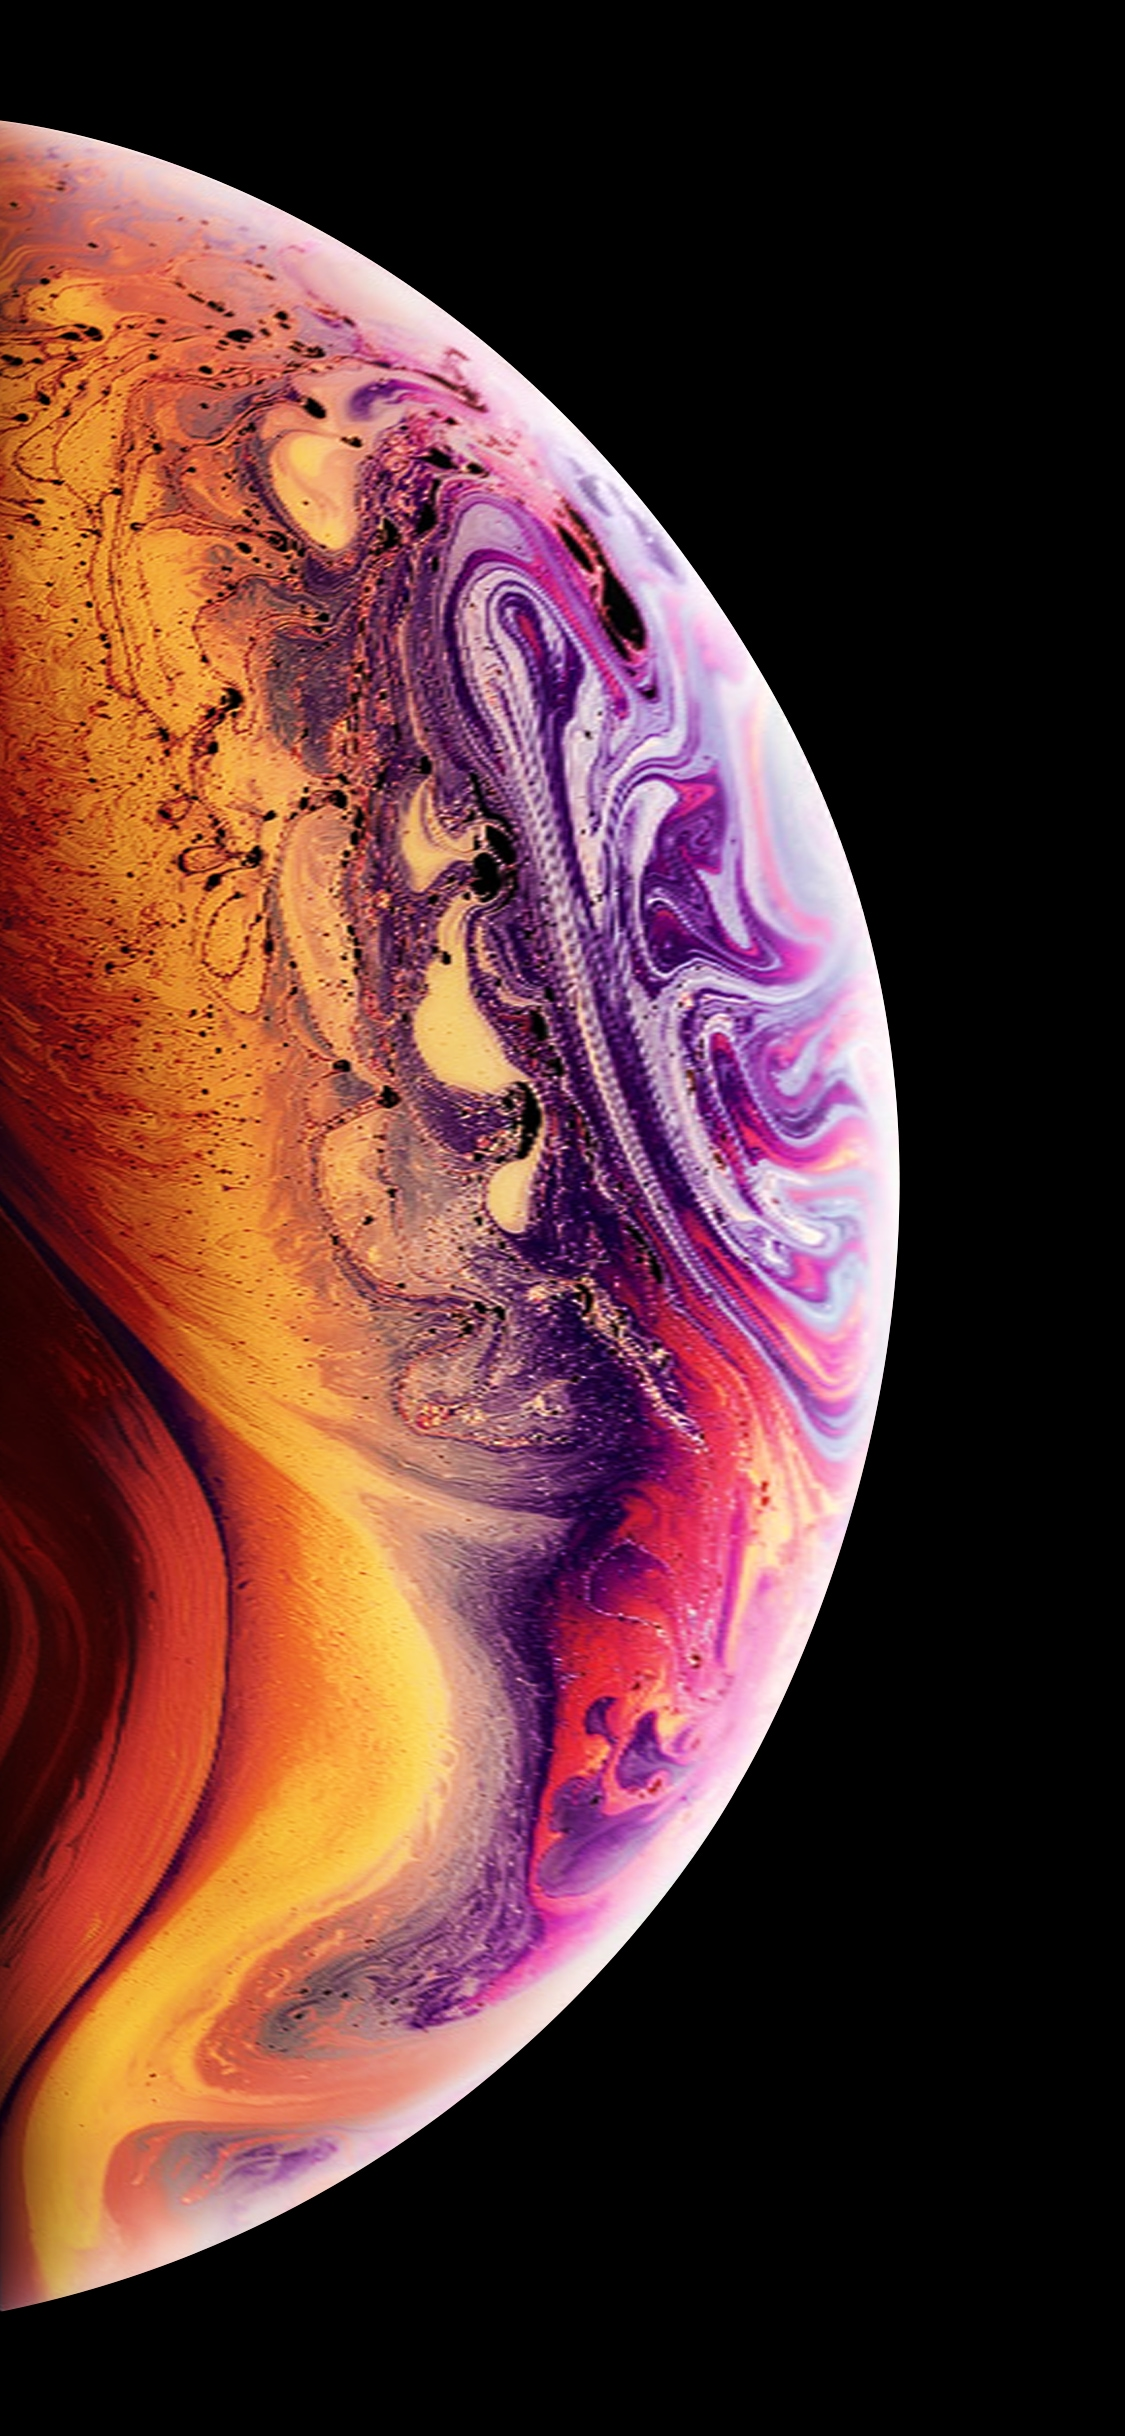 Lo Sfondo Di Iphone Xs è Già Disponibile Al Download Anche Se Usate